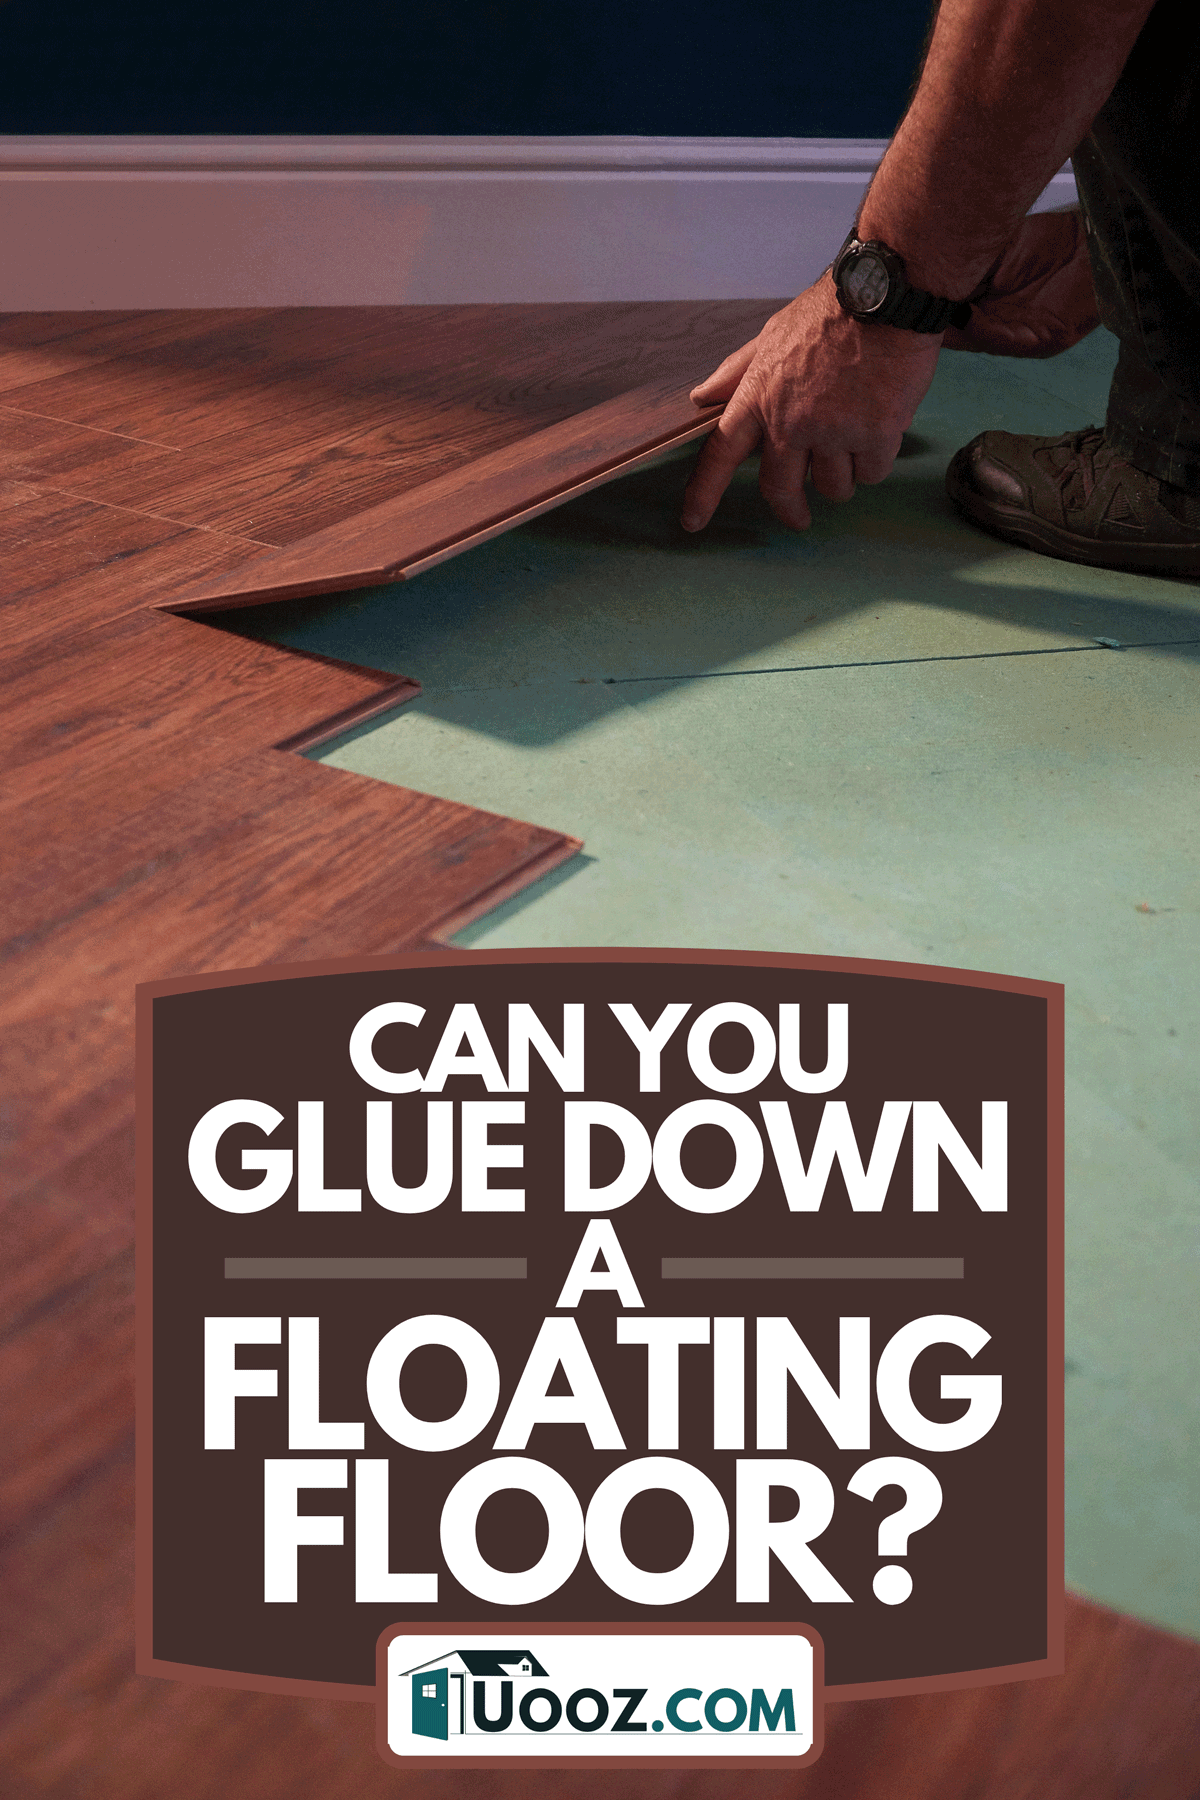 Workman laying a piece of new laminate flooring, Can You Glue Down A Floating Floor?